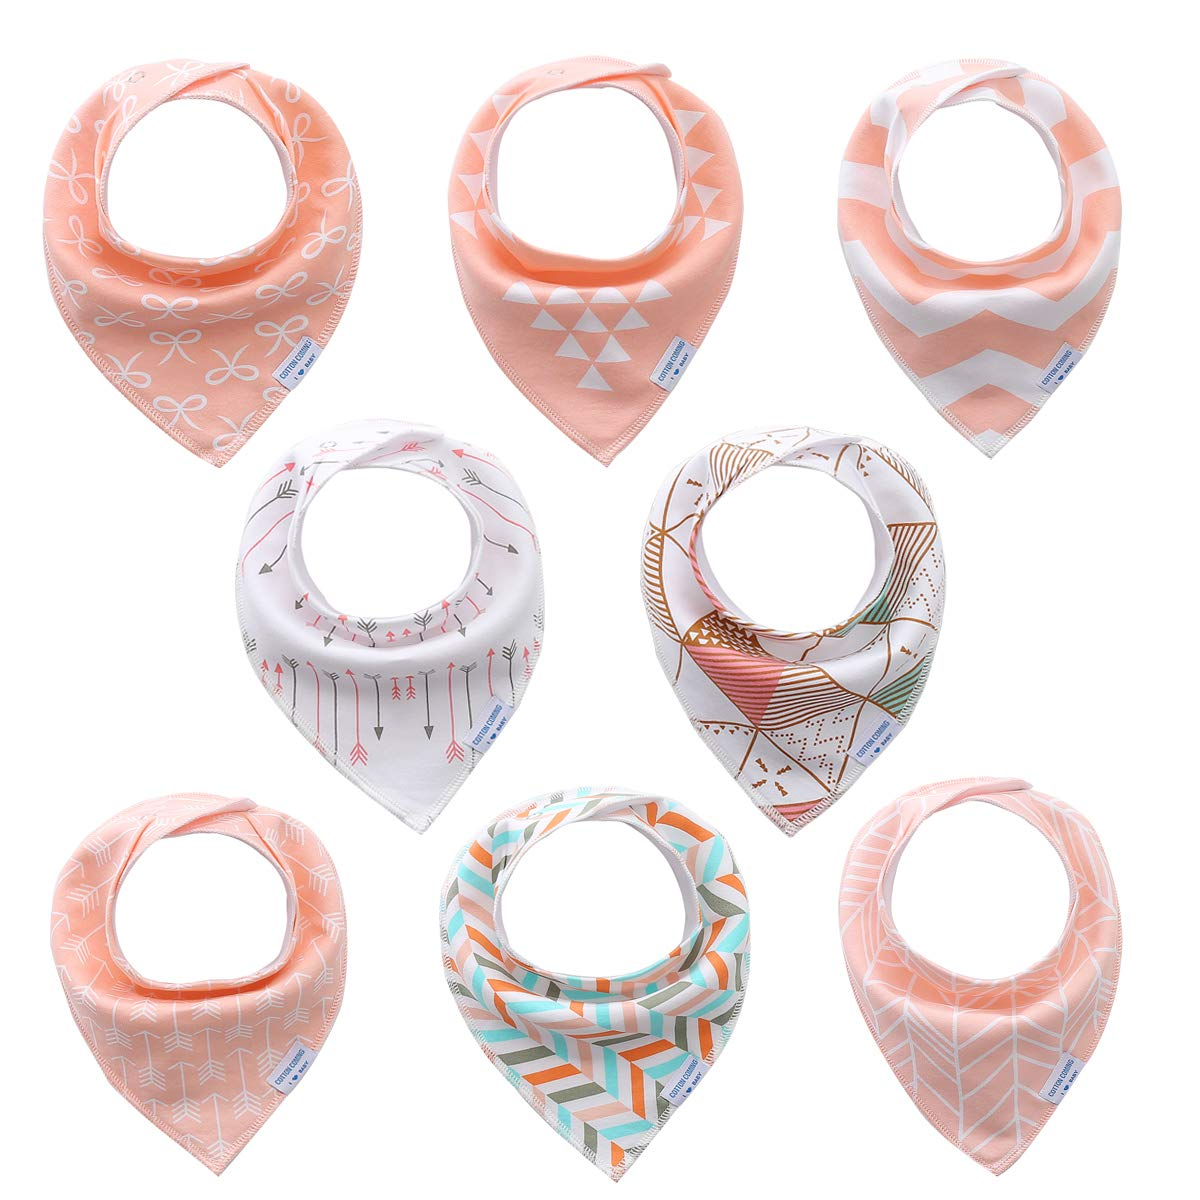 Pink Baby Bandana Drool Bibs for Girls 8 Pack Set,Organic Cotton,Soft and Absorbent, Hypoallergenic Baby Feeding Bibs and Baby Teething Bibs Gift Set for Newborns, Infants and Toddler (Pink 02)